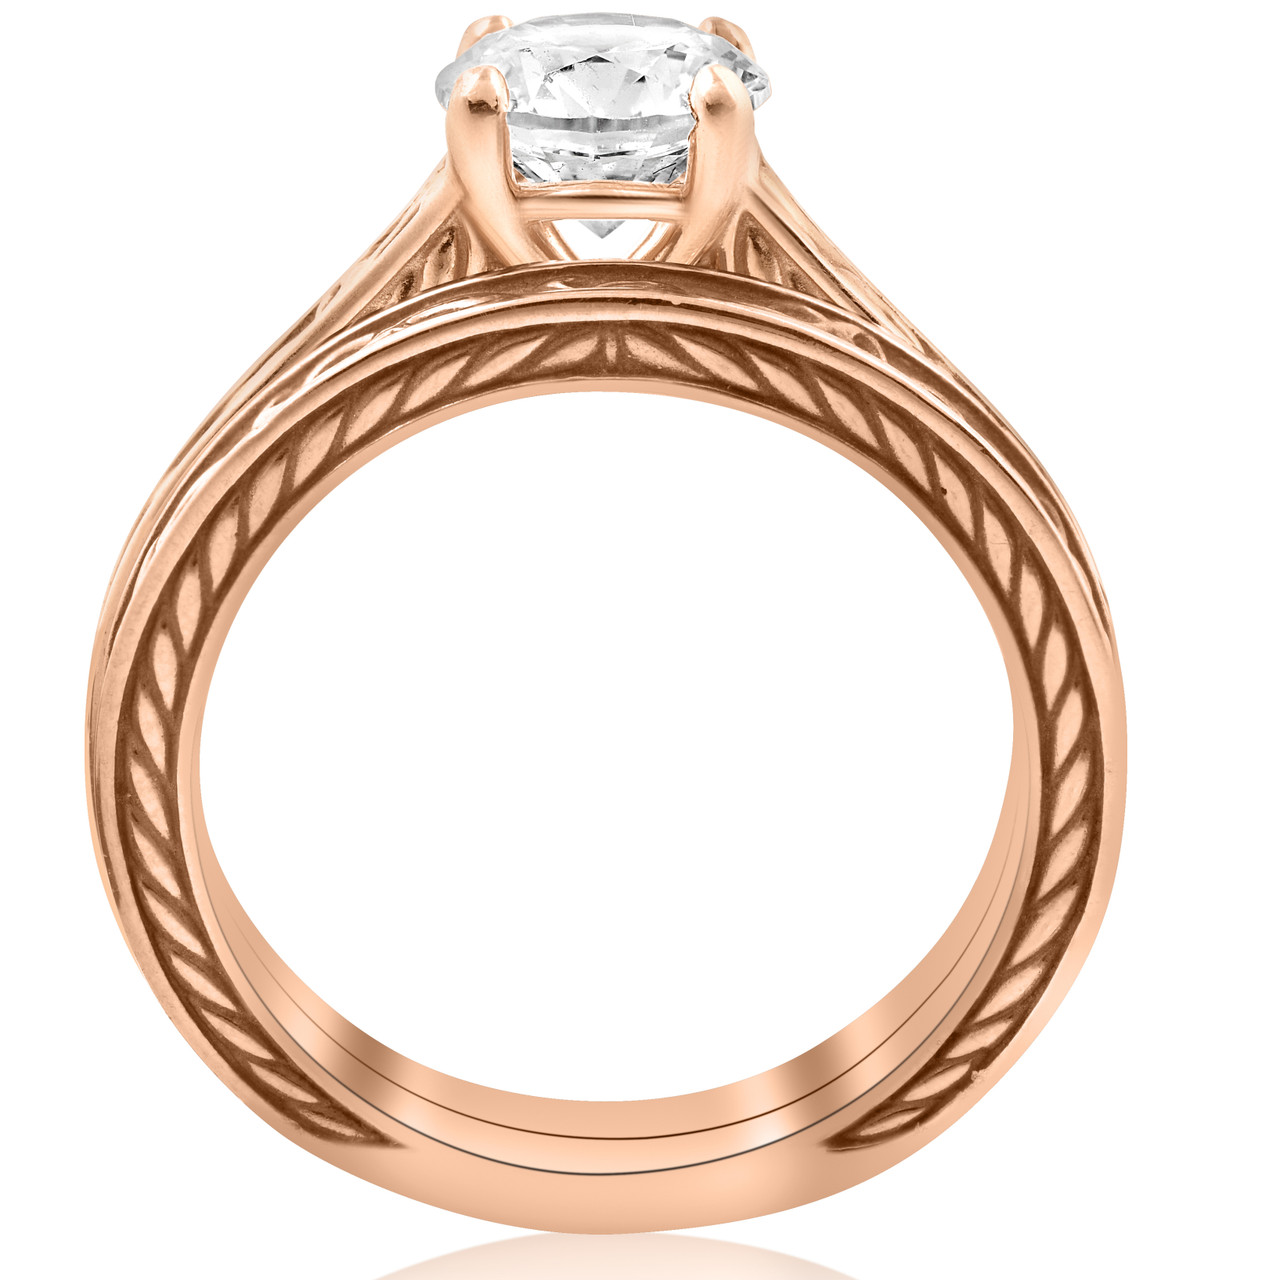 1ct Diamond Solitaire 14k Rose Gold Vintage Engagement Ring Wedding Band  ((G,H), SI(1),SI(2))